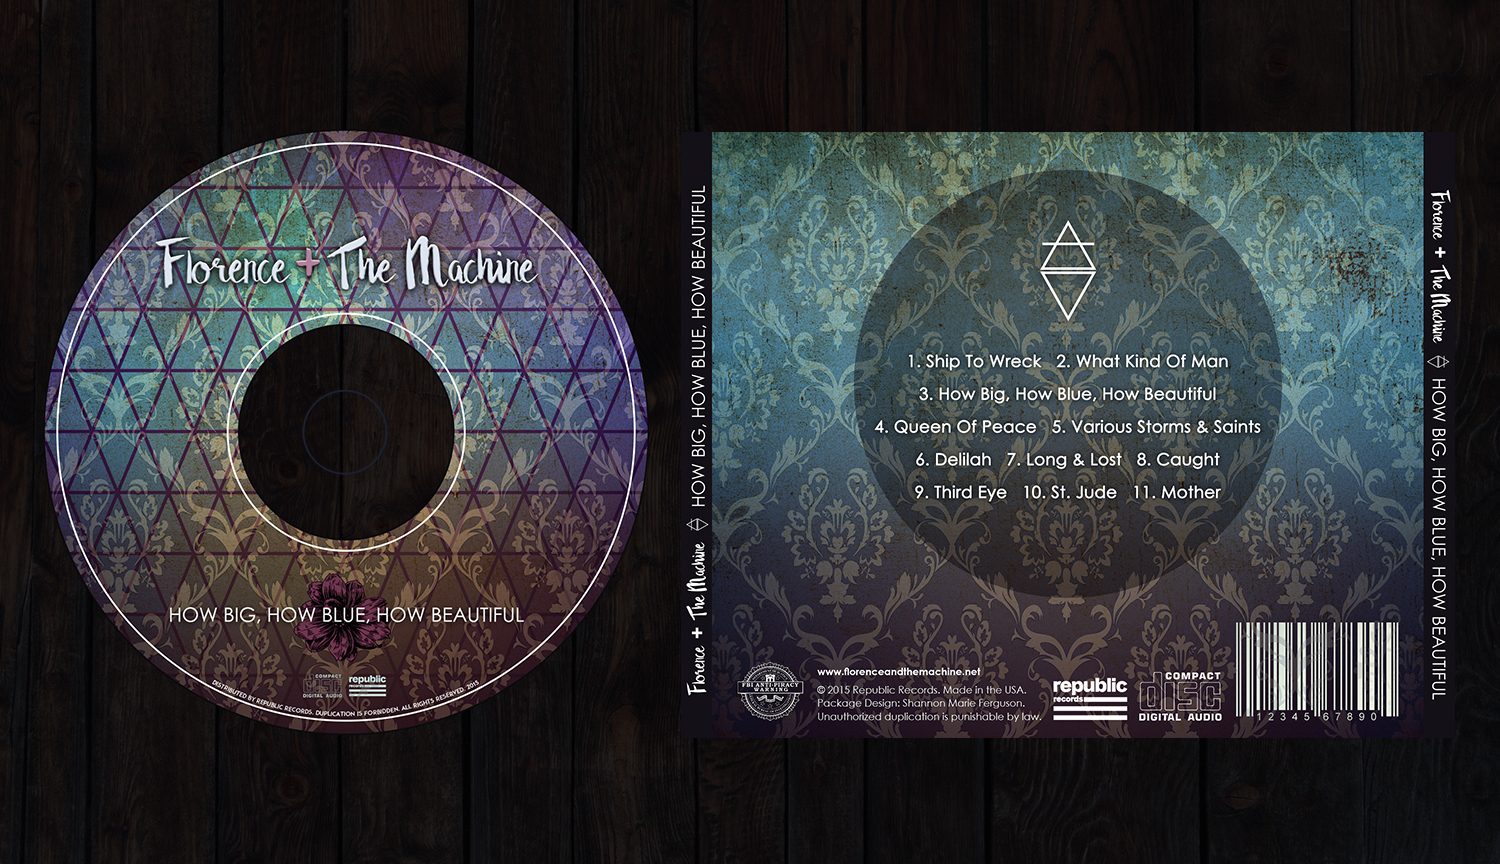 CD Design and Back of Case Insert